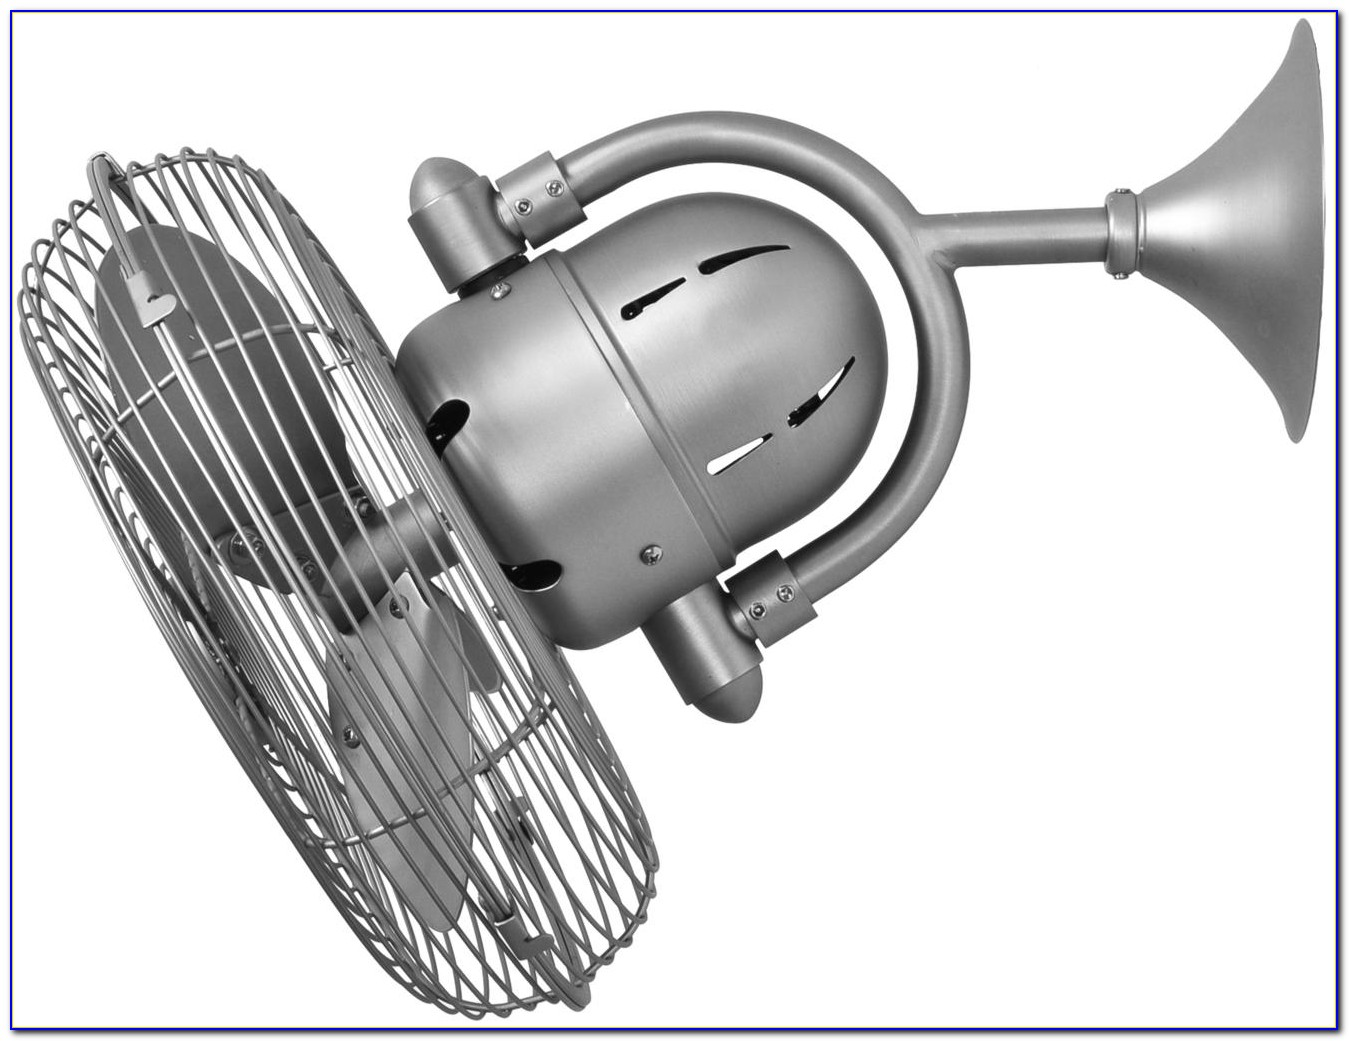 Wall Mounted Fans Vs Ceiling Fan Ceiling Home Design